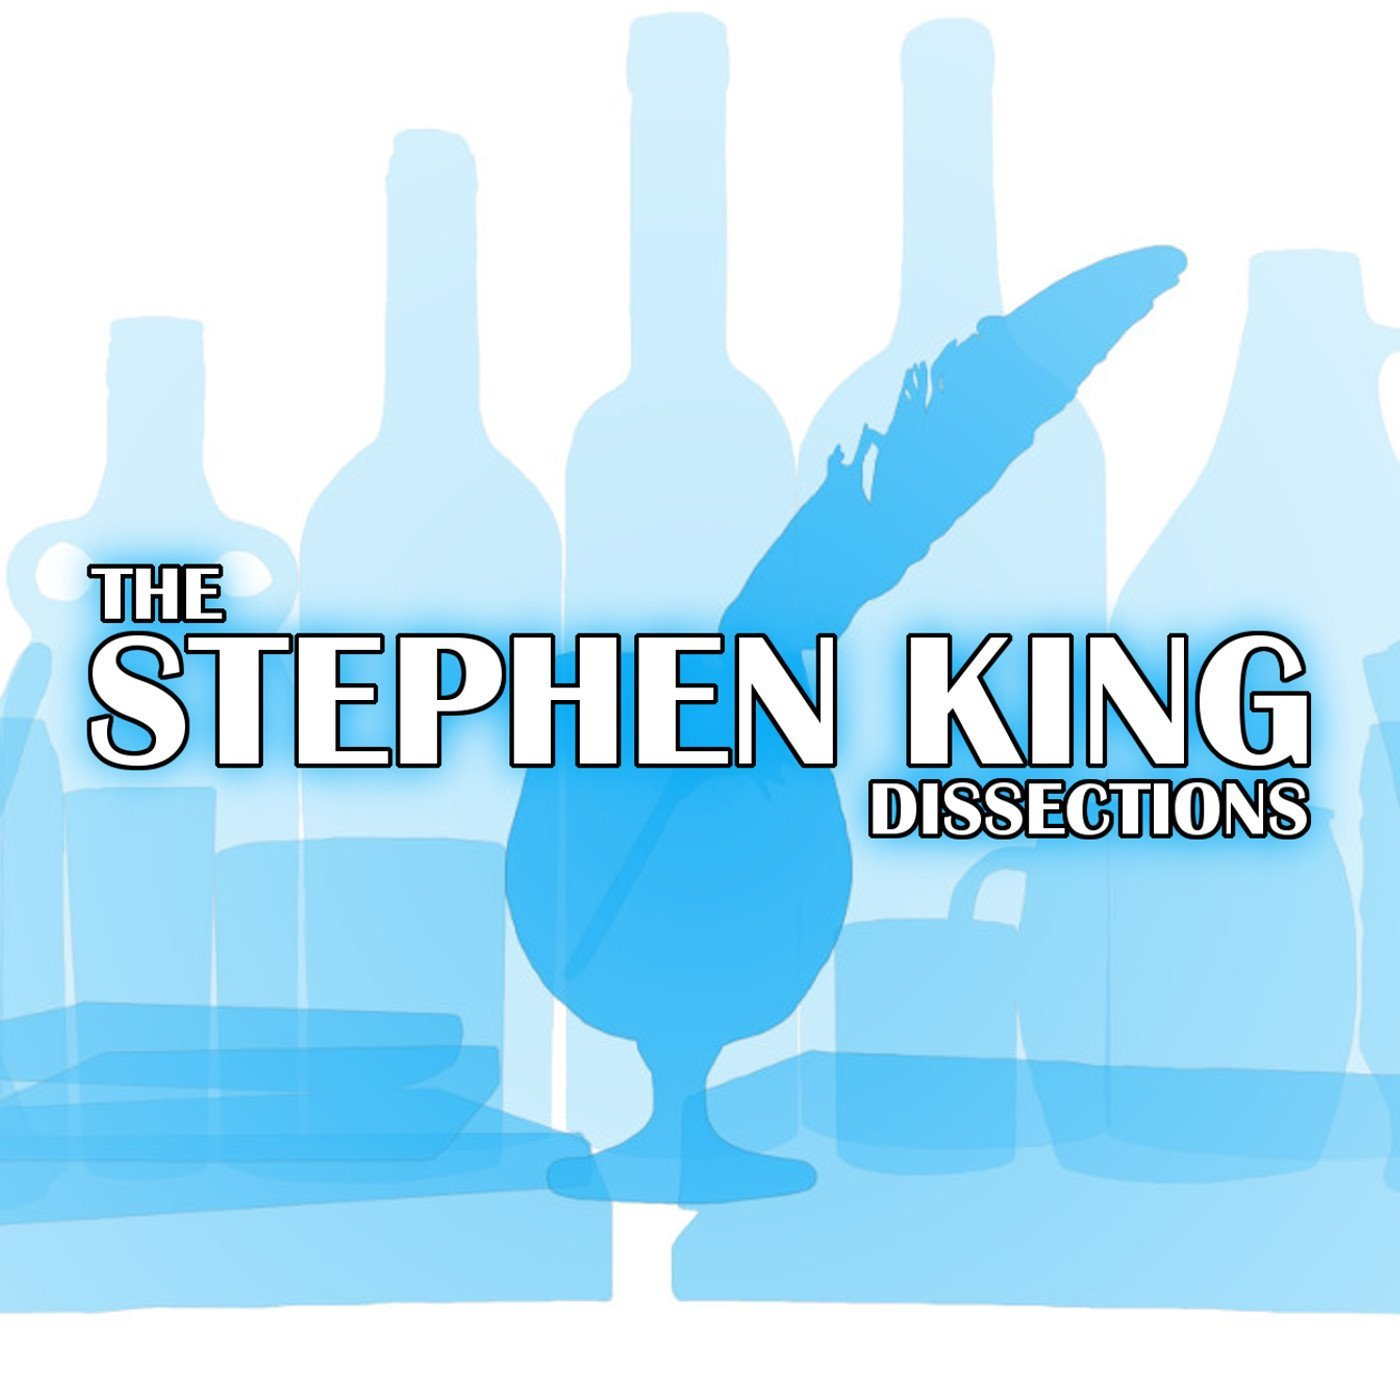 ROADWORK: THE SHINING's Younger, Hotter Sister (Stephen King Dissections ep. 12)